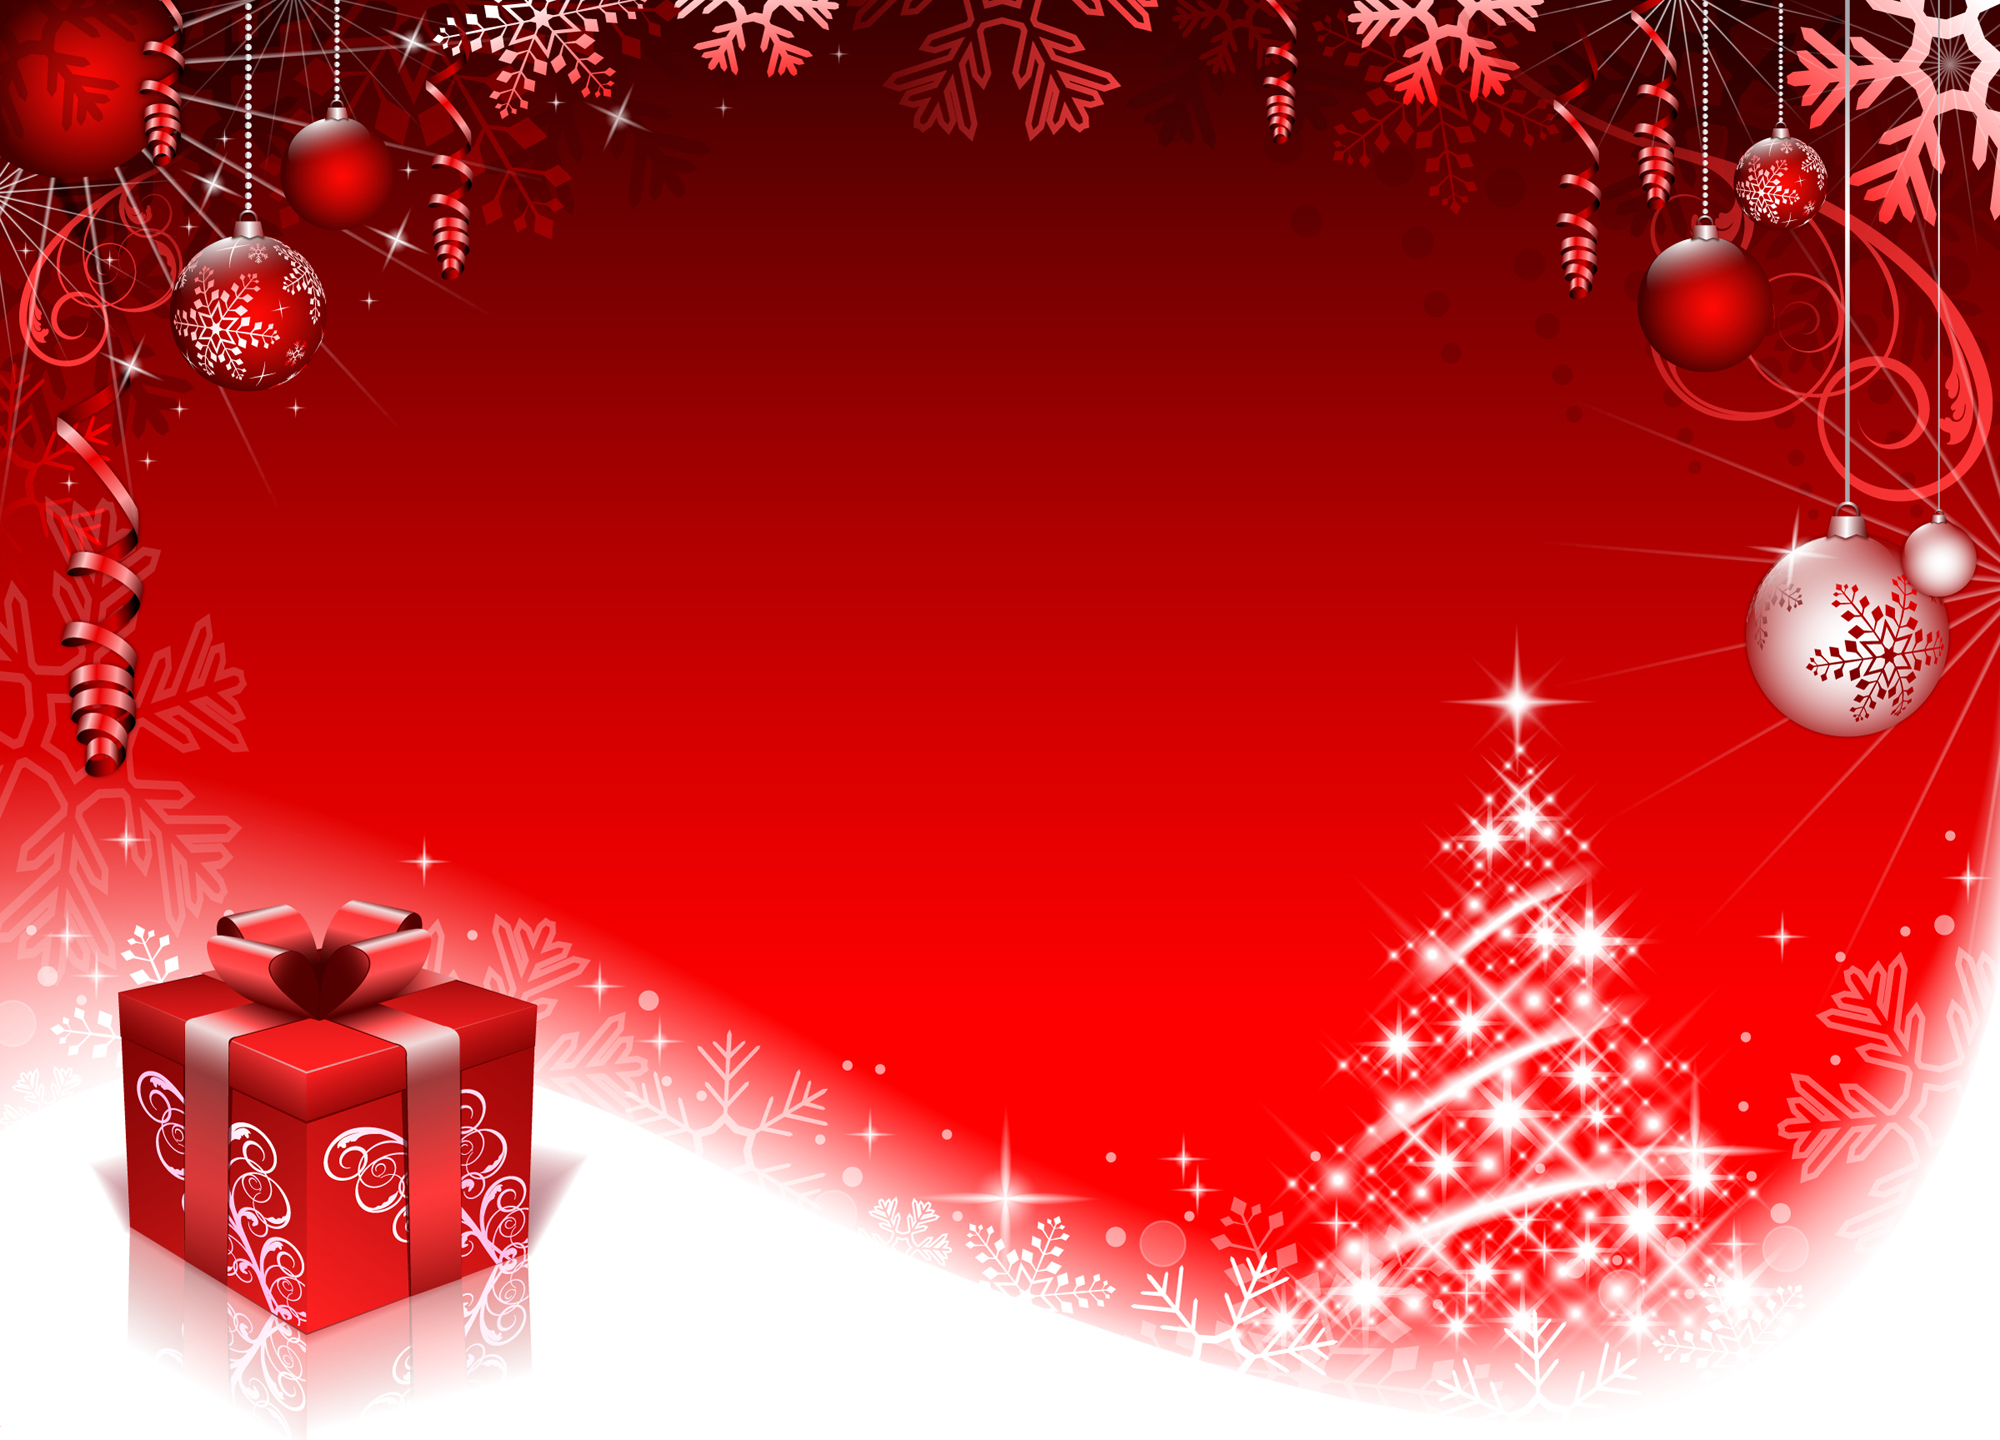 download christmas backgrounds - acur.lunamedia.co